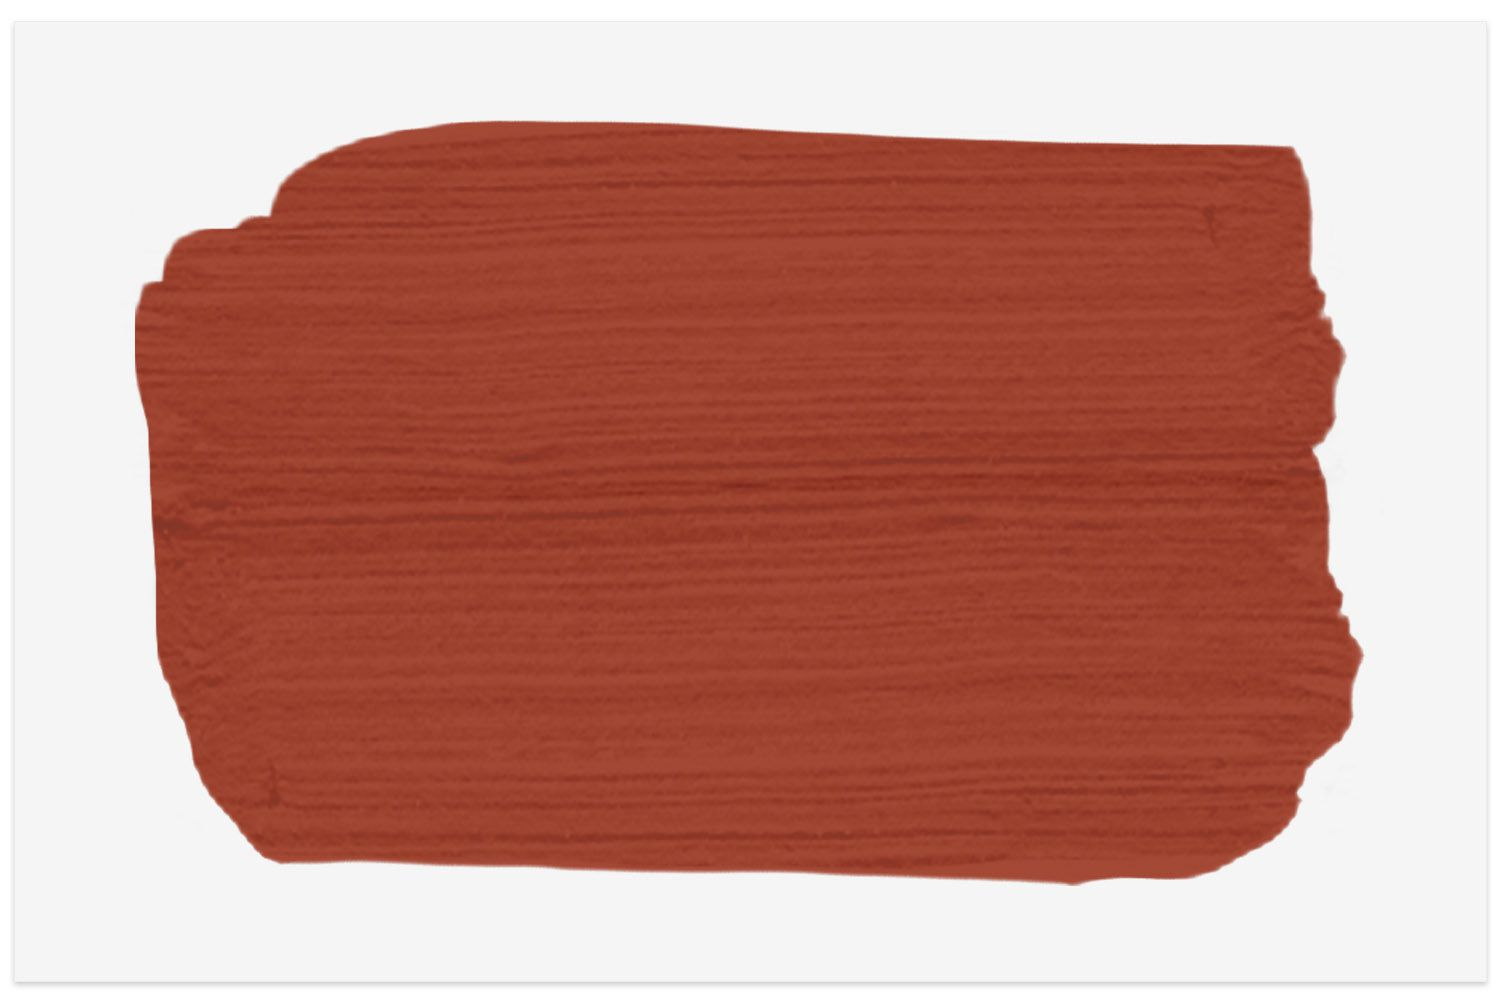 Rodeo Red paint swatch from Behr